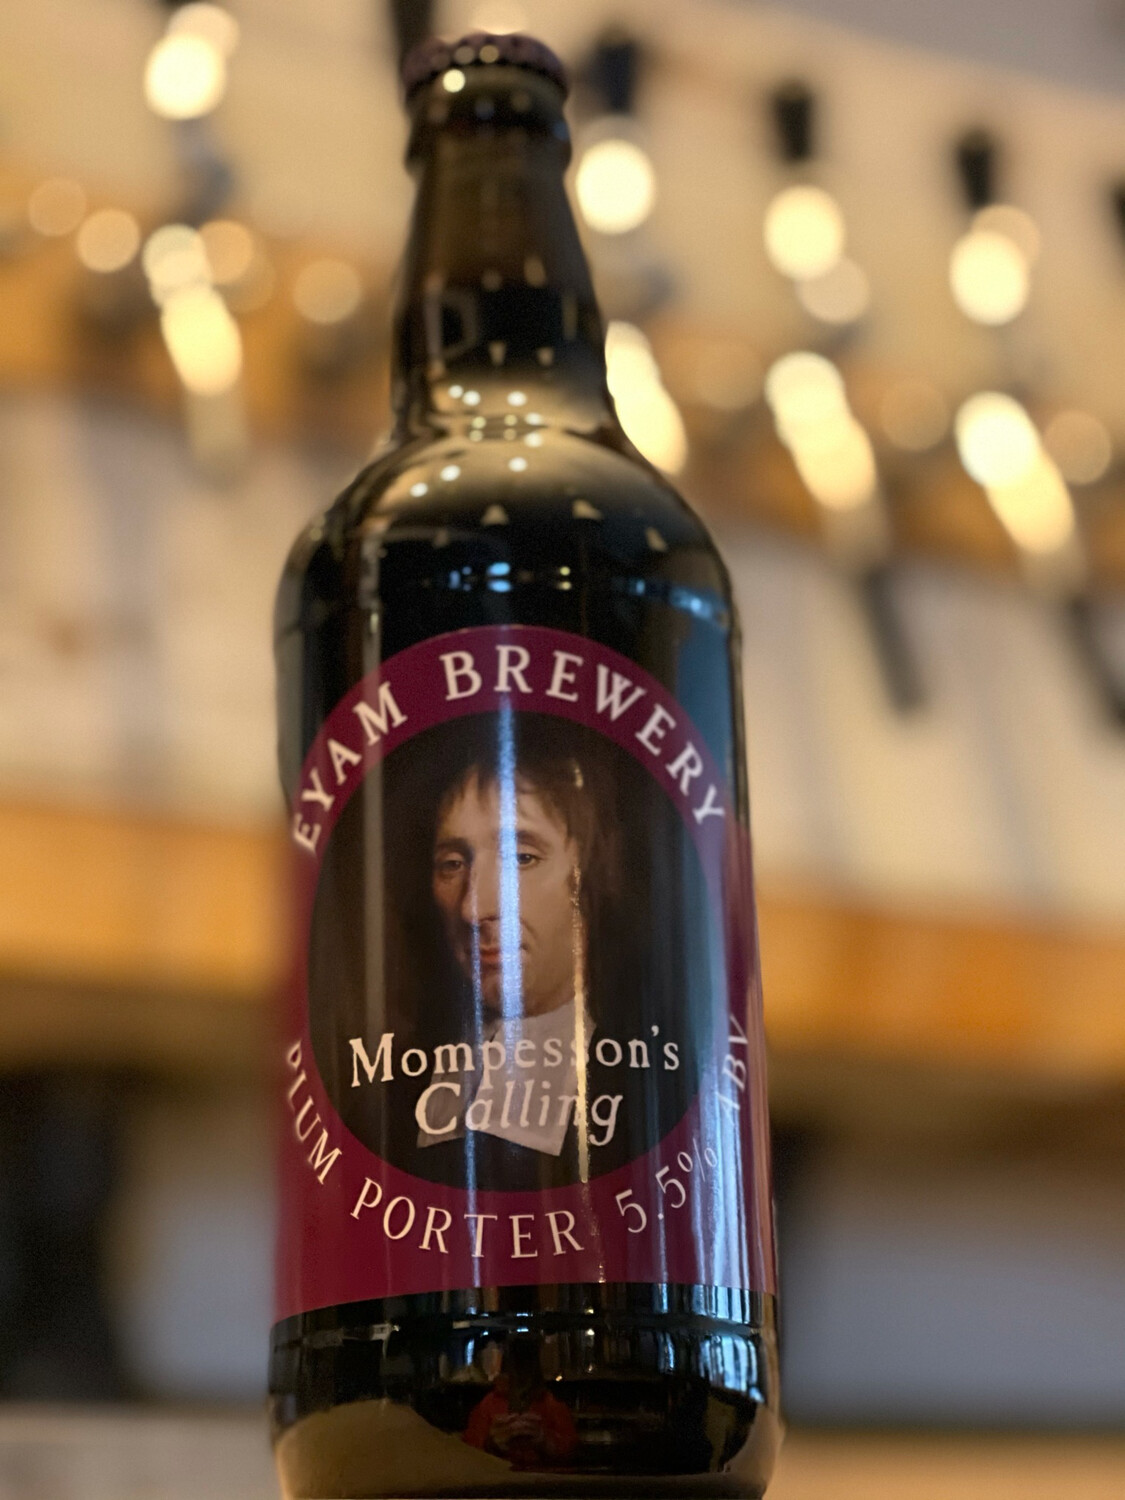 EYAM BREWERY- MOMPESSON's CALLING